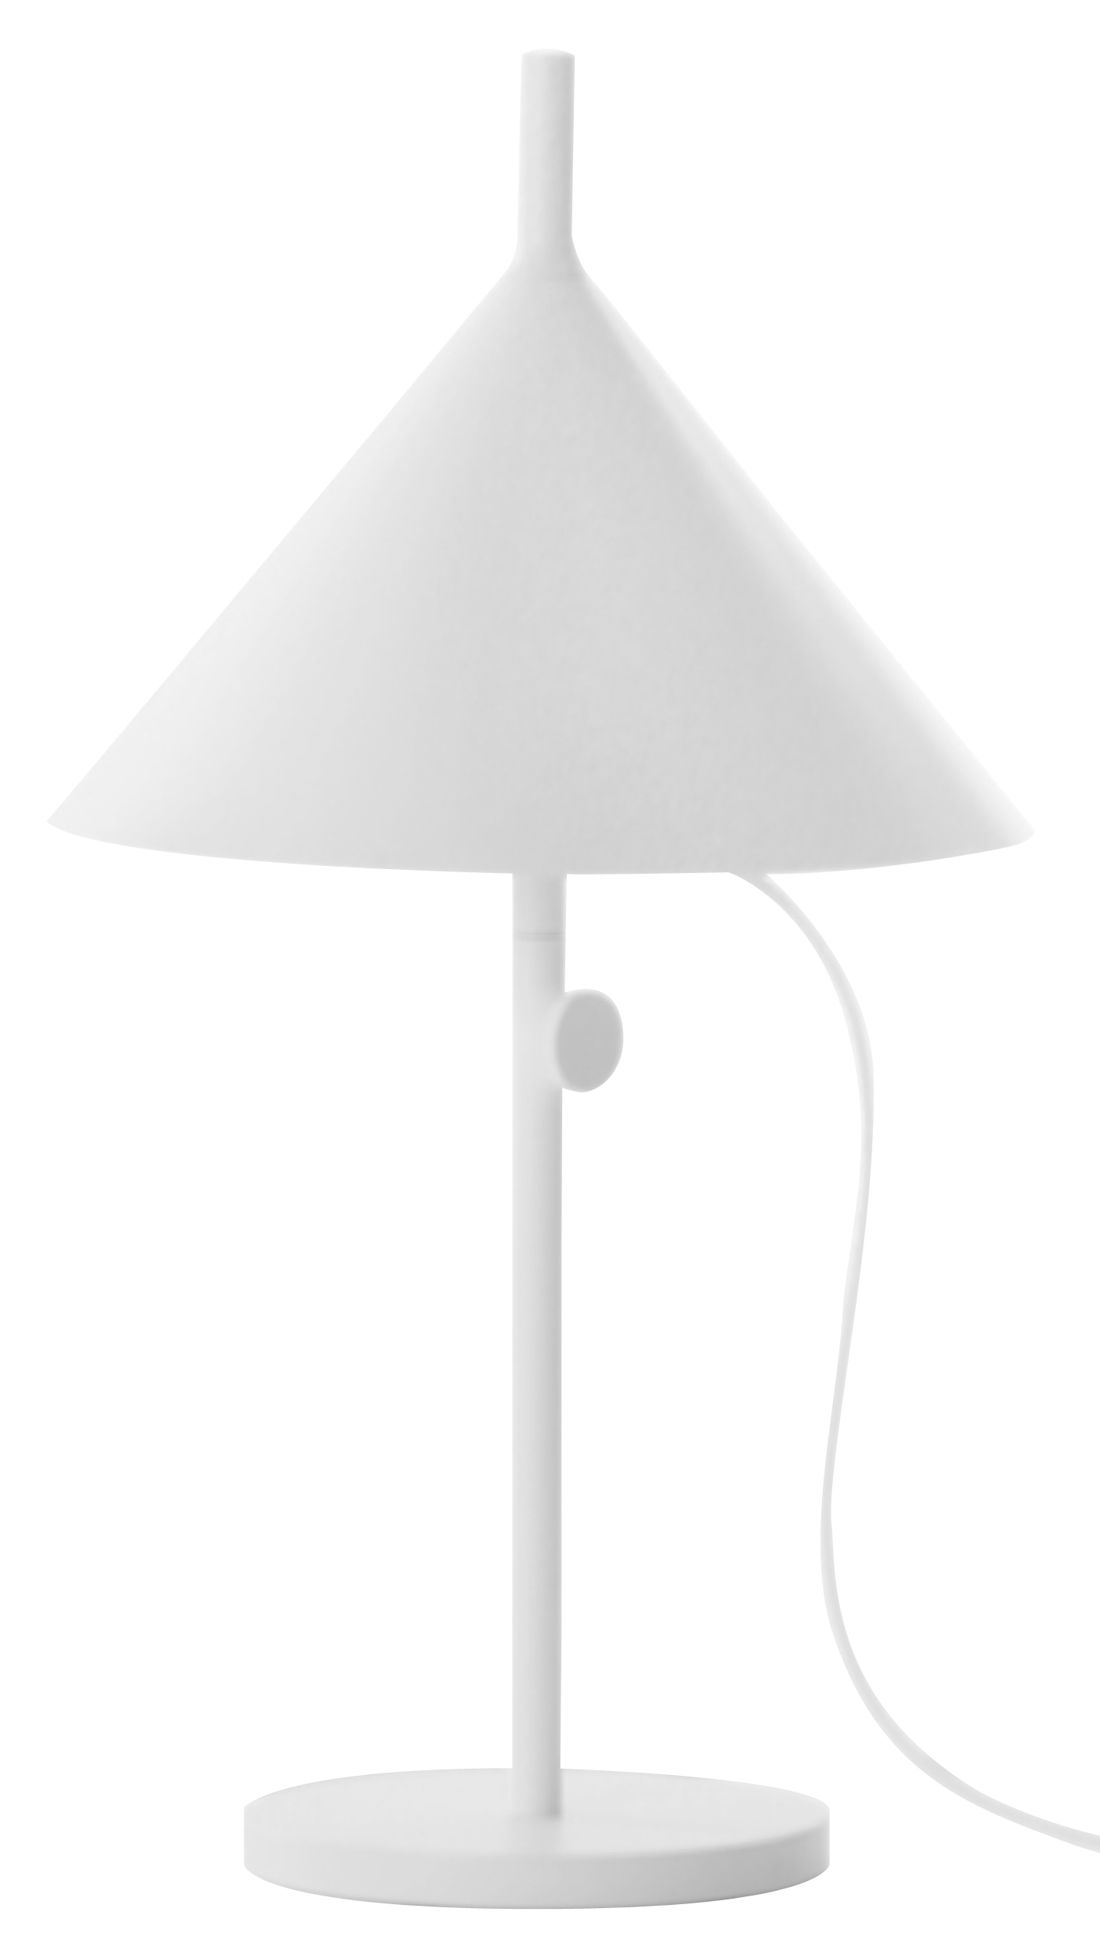 Lighting - Table Lamps - Nendo Cone w132t Table lamp - Adjustable height by Wästberg - White - Steel